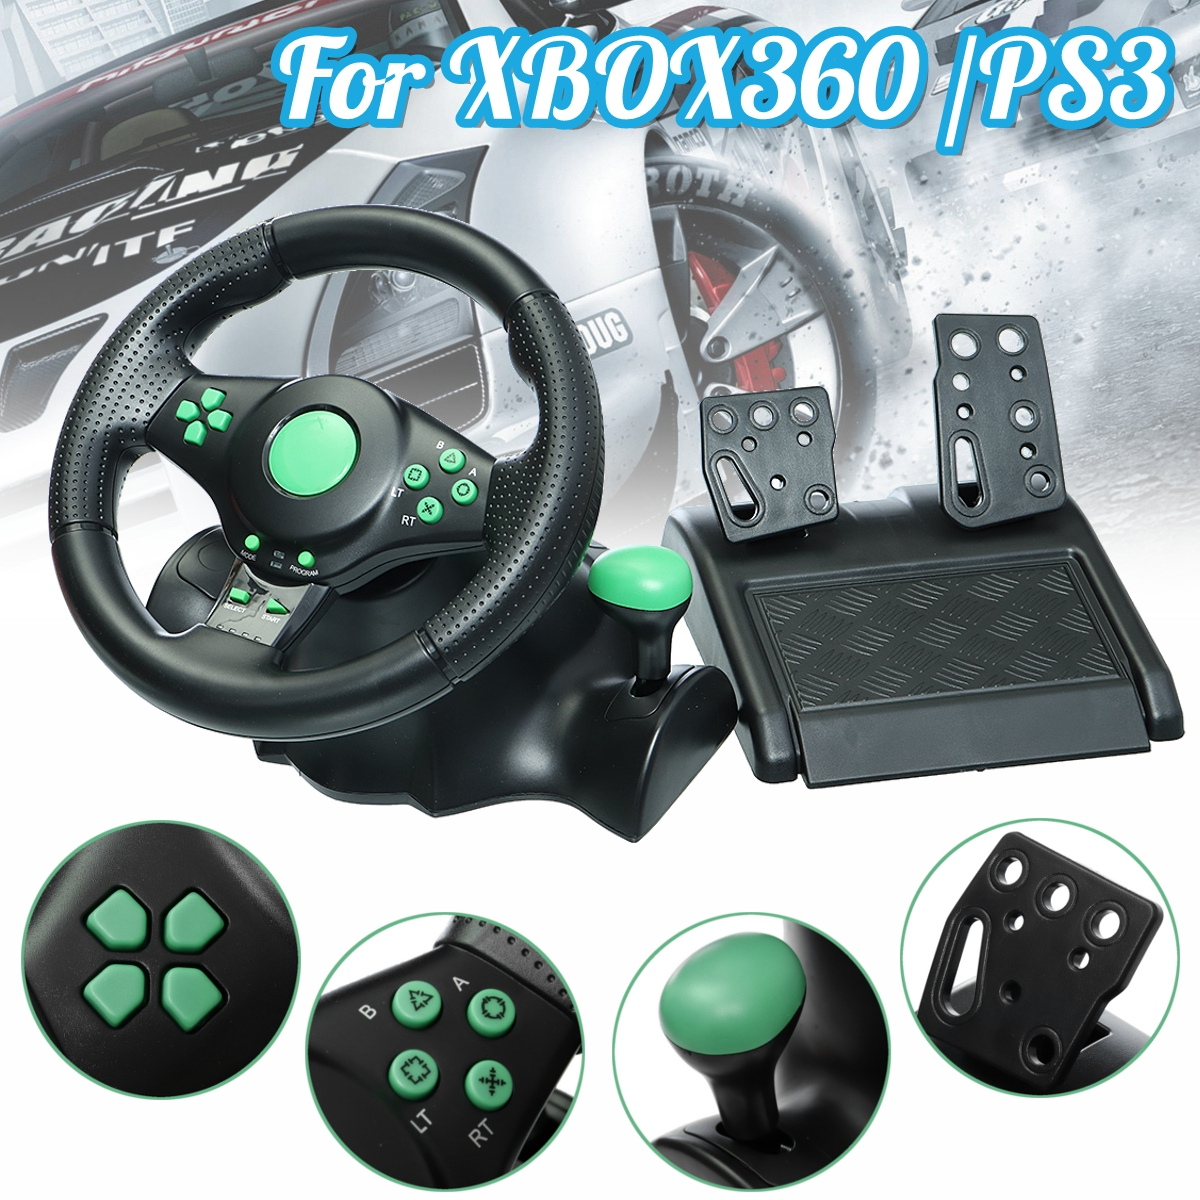 Feedback Racing Steering Wheel + Pedal Set Racing Gaming Driving PC for ps3